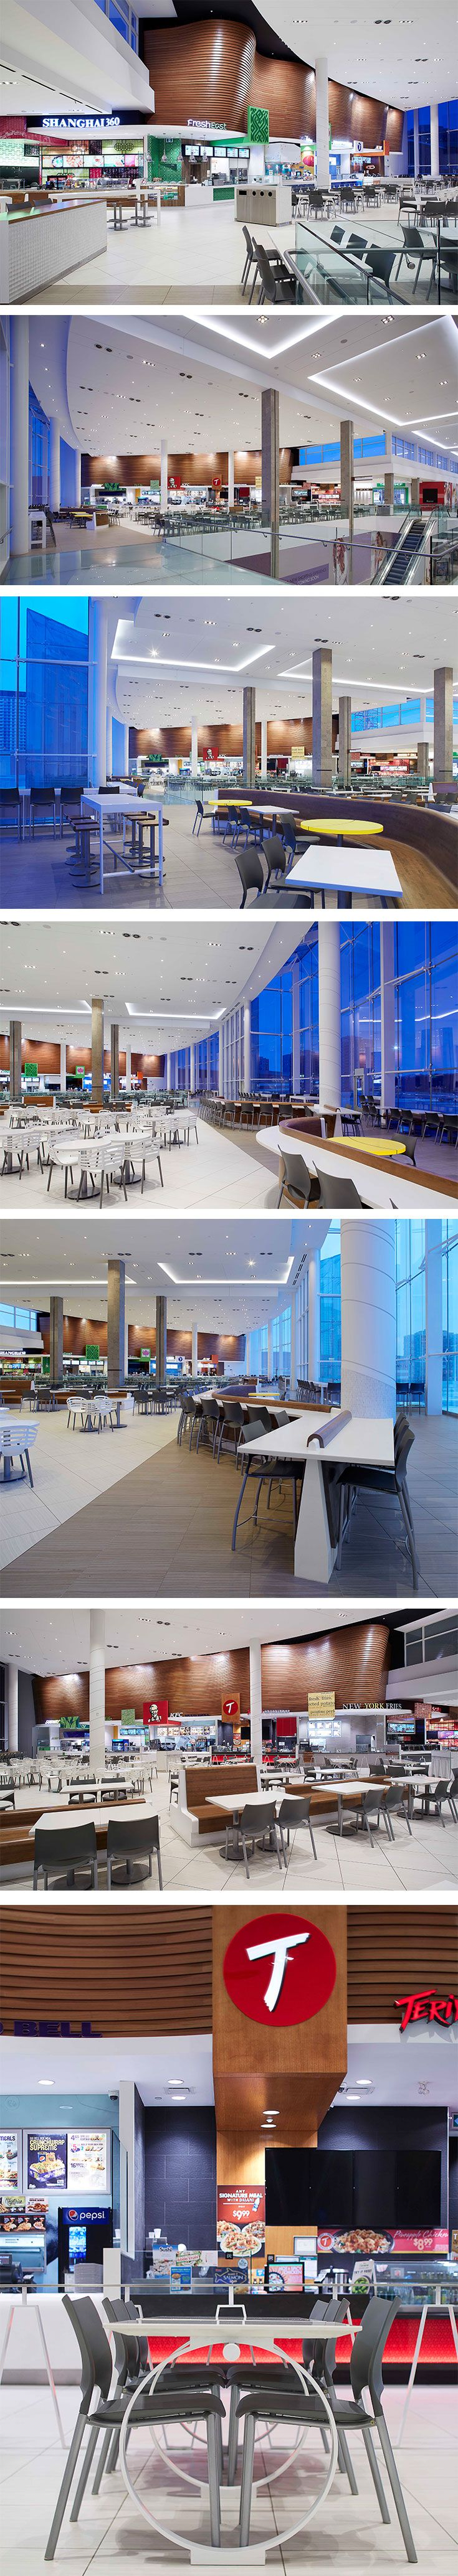 Best 25 food court ideas on pinterest food court design for Architectural design services near me